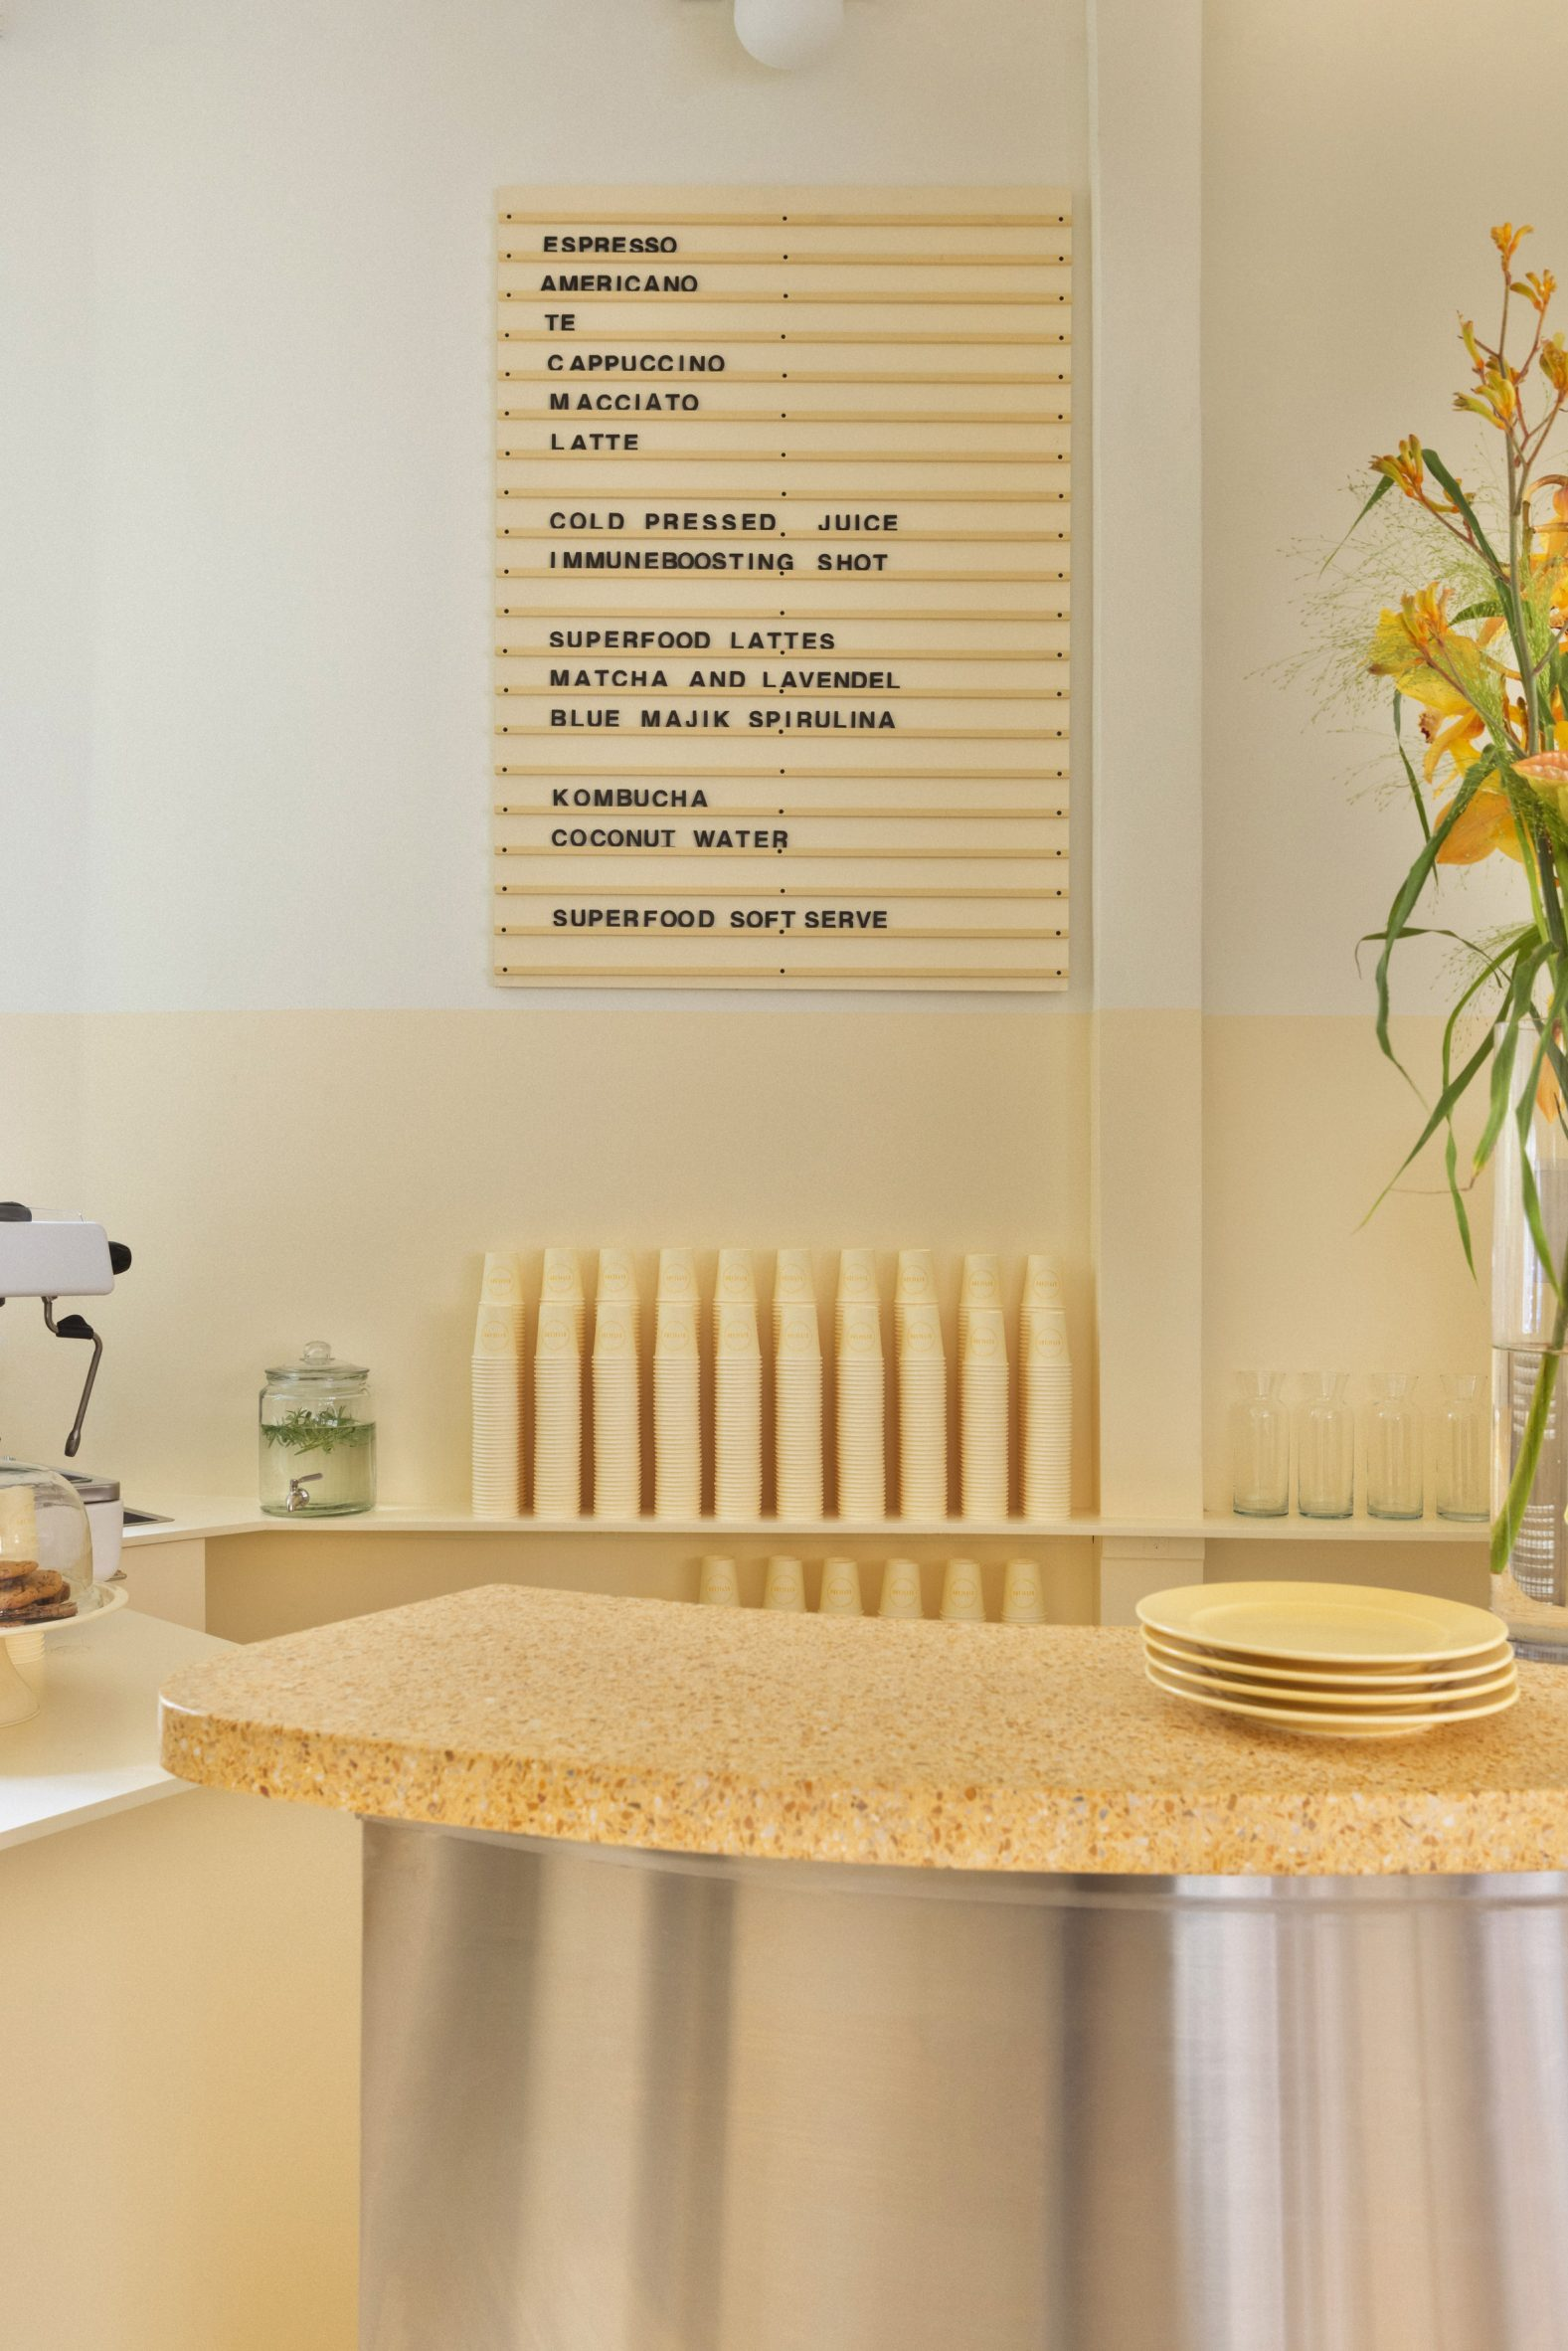 Yellow cafe counter